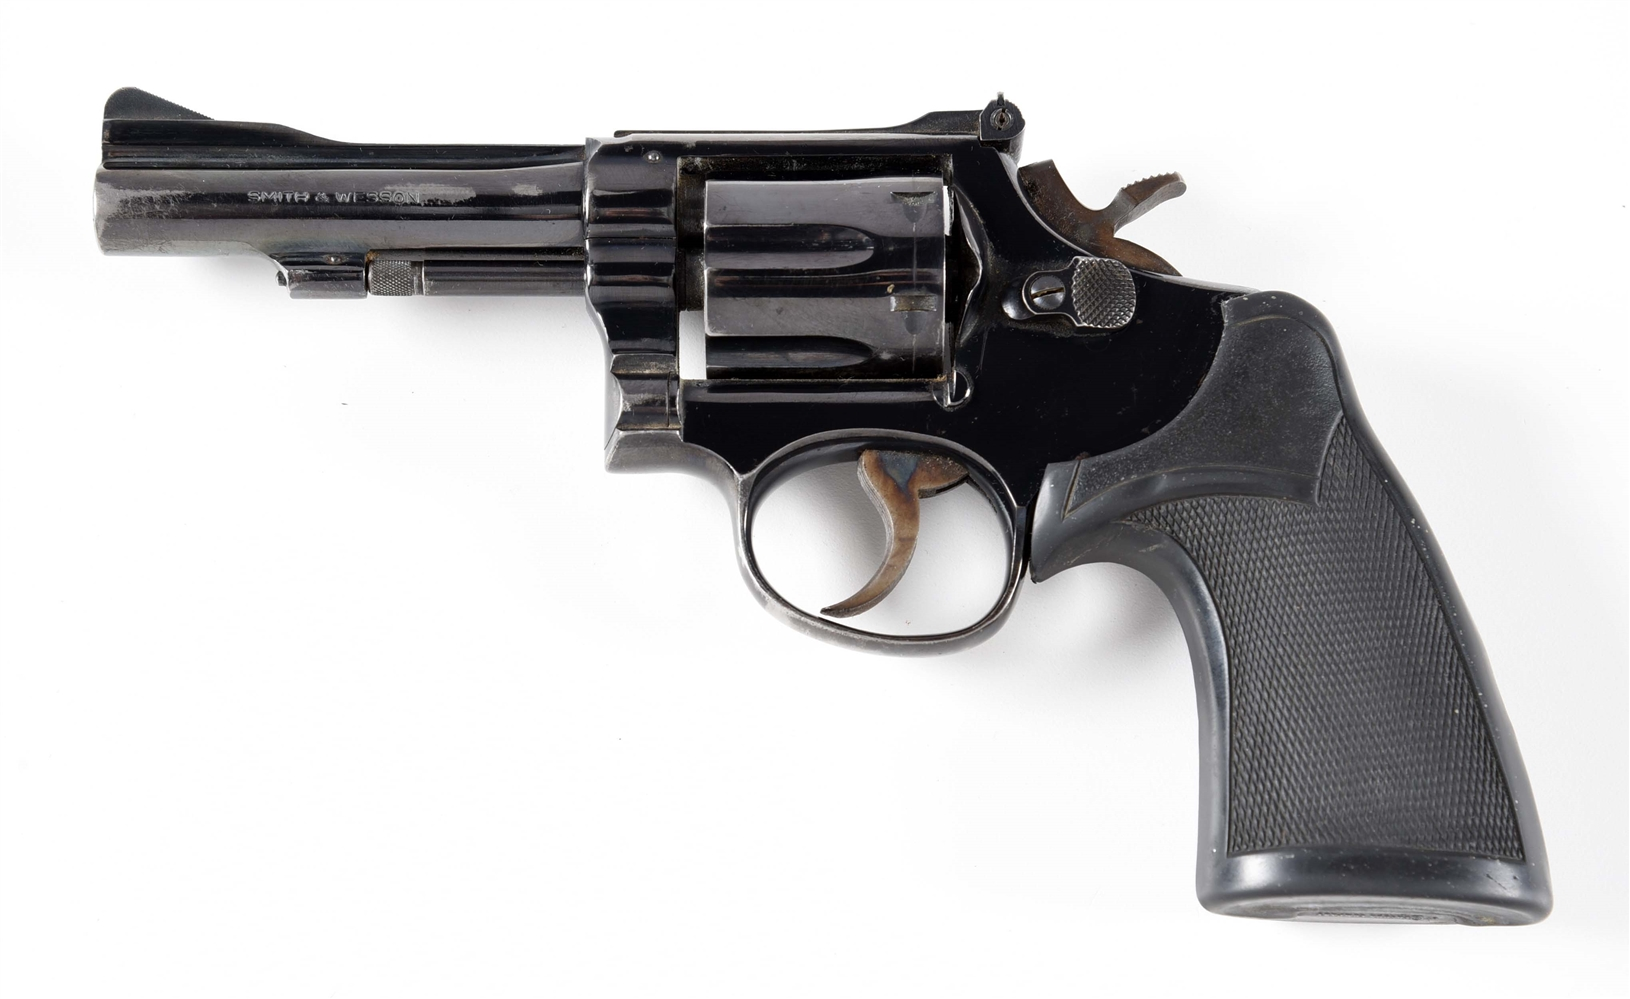 (M) SMITH & WESSON MODEL 15-3 DOUBLE ACTION .38 REVOLVER.